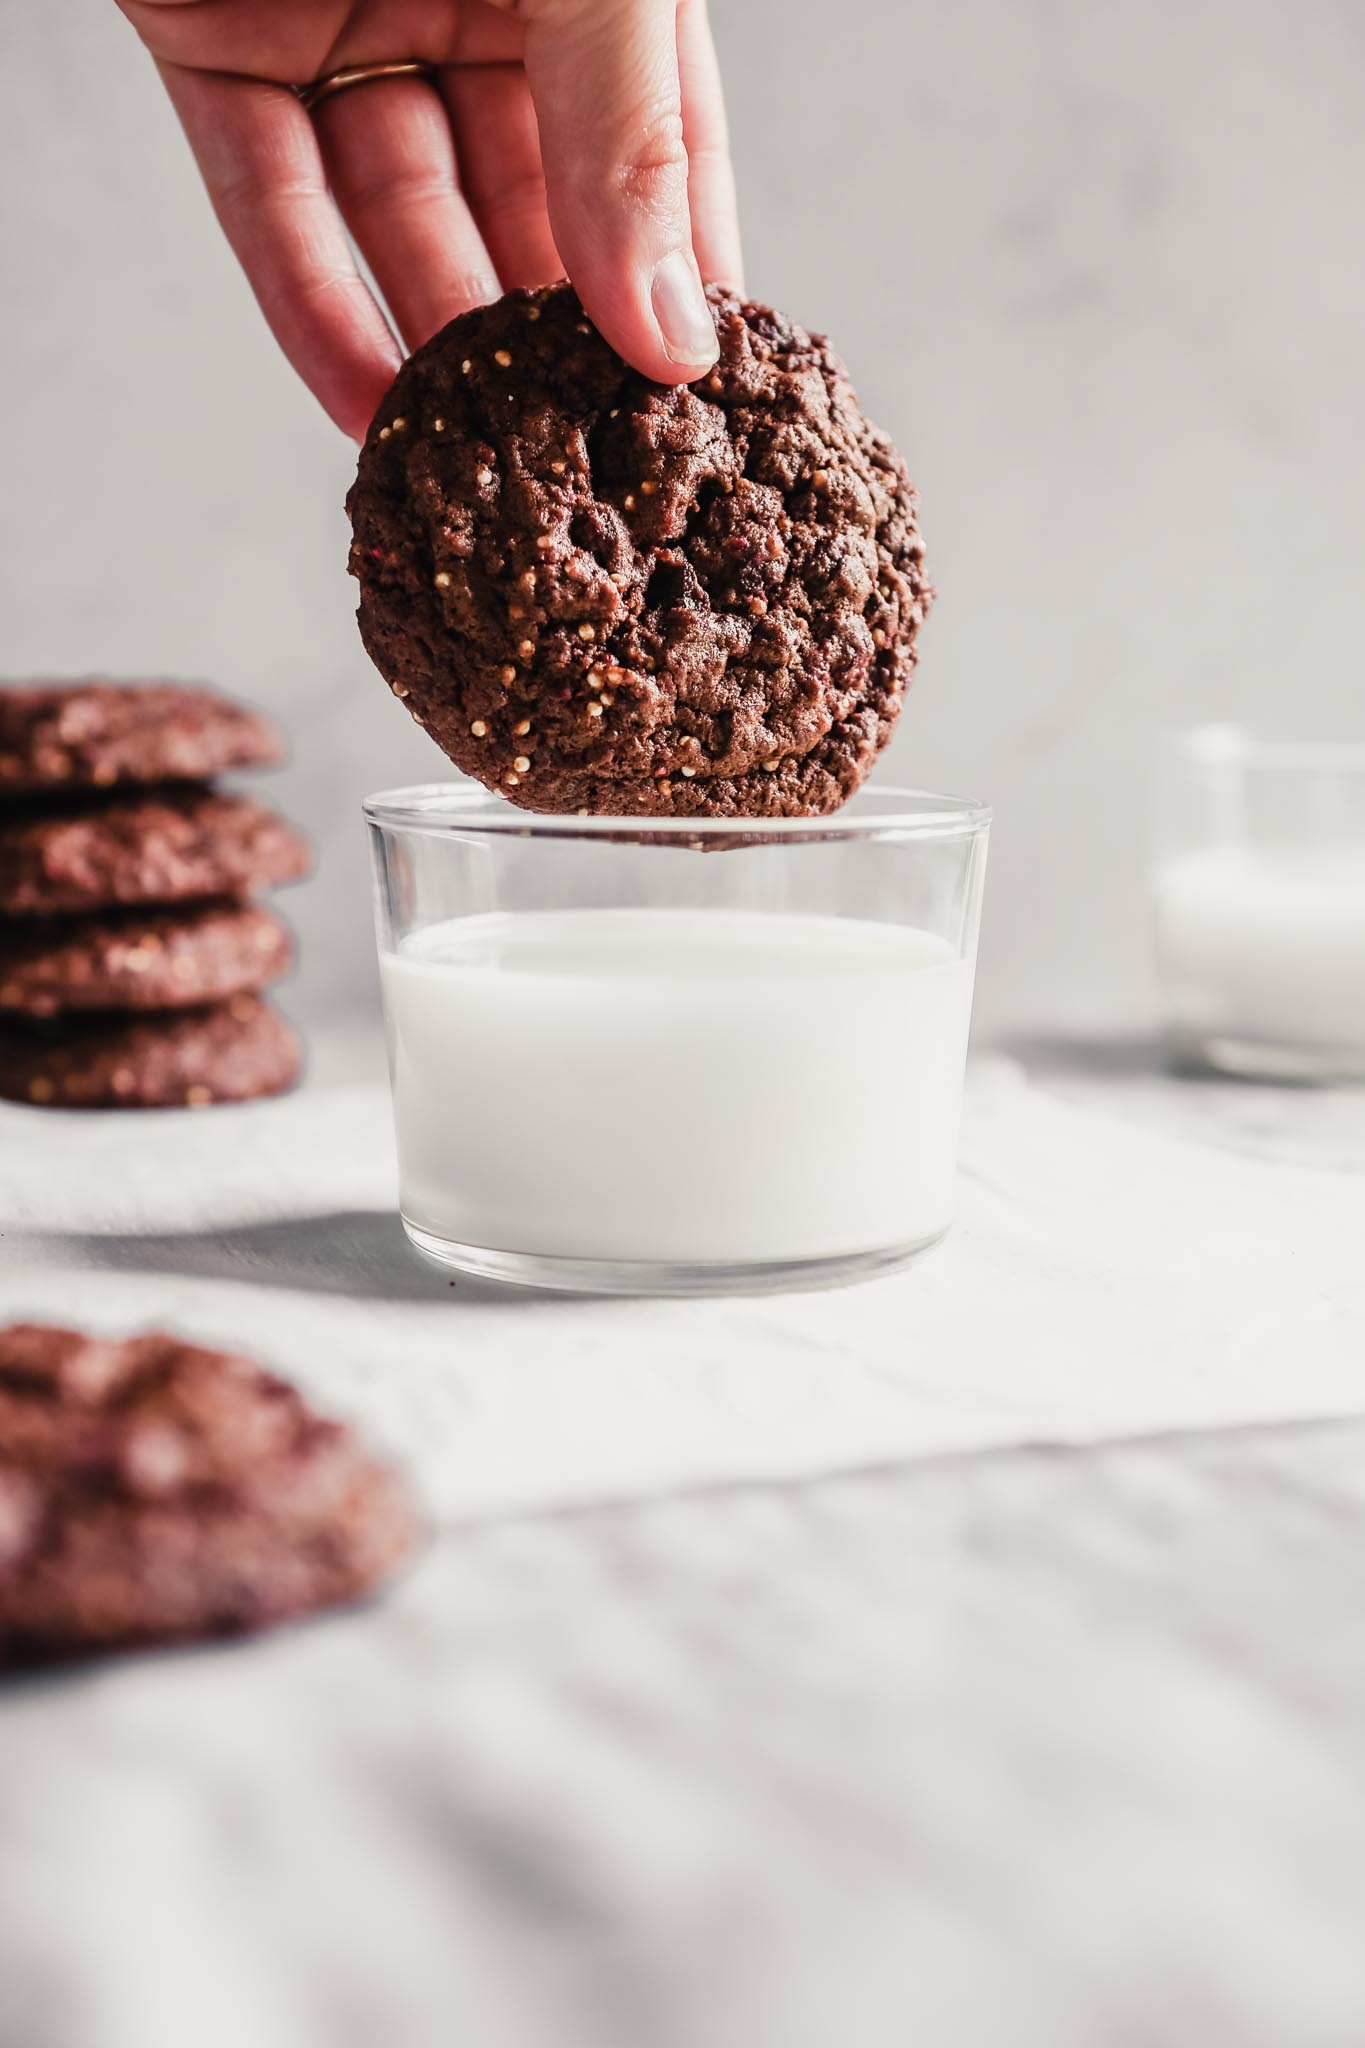 Photograph of a Mexican chocolate cookie being dipped in milk